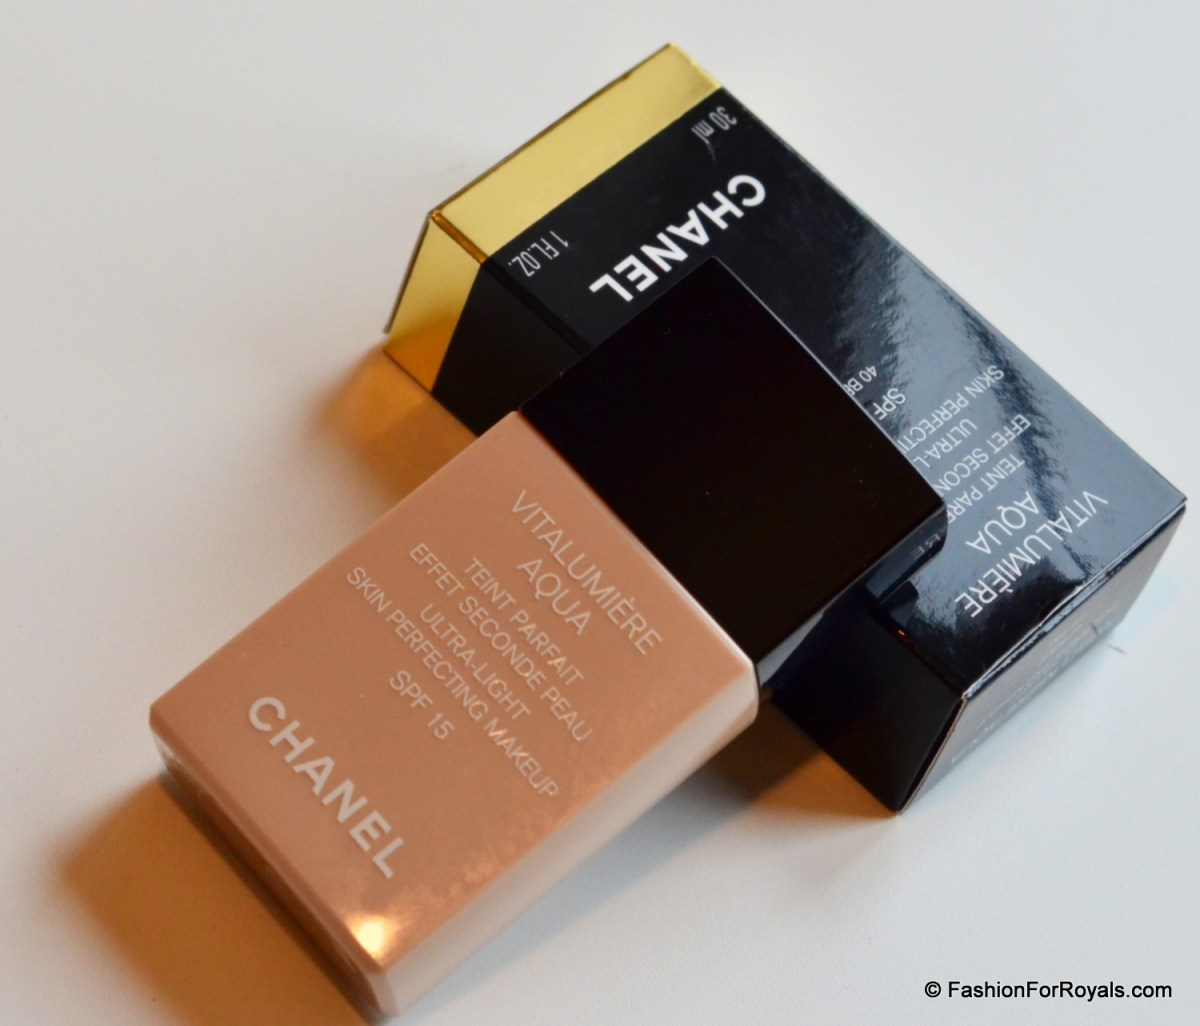 Chanel Vitalumiere Aqua Foundation Review - Swatch 40 Beige